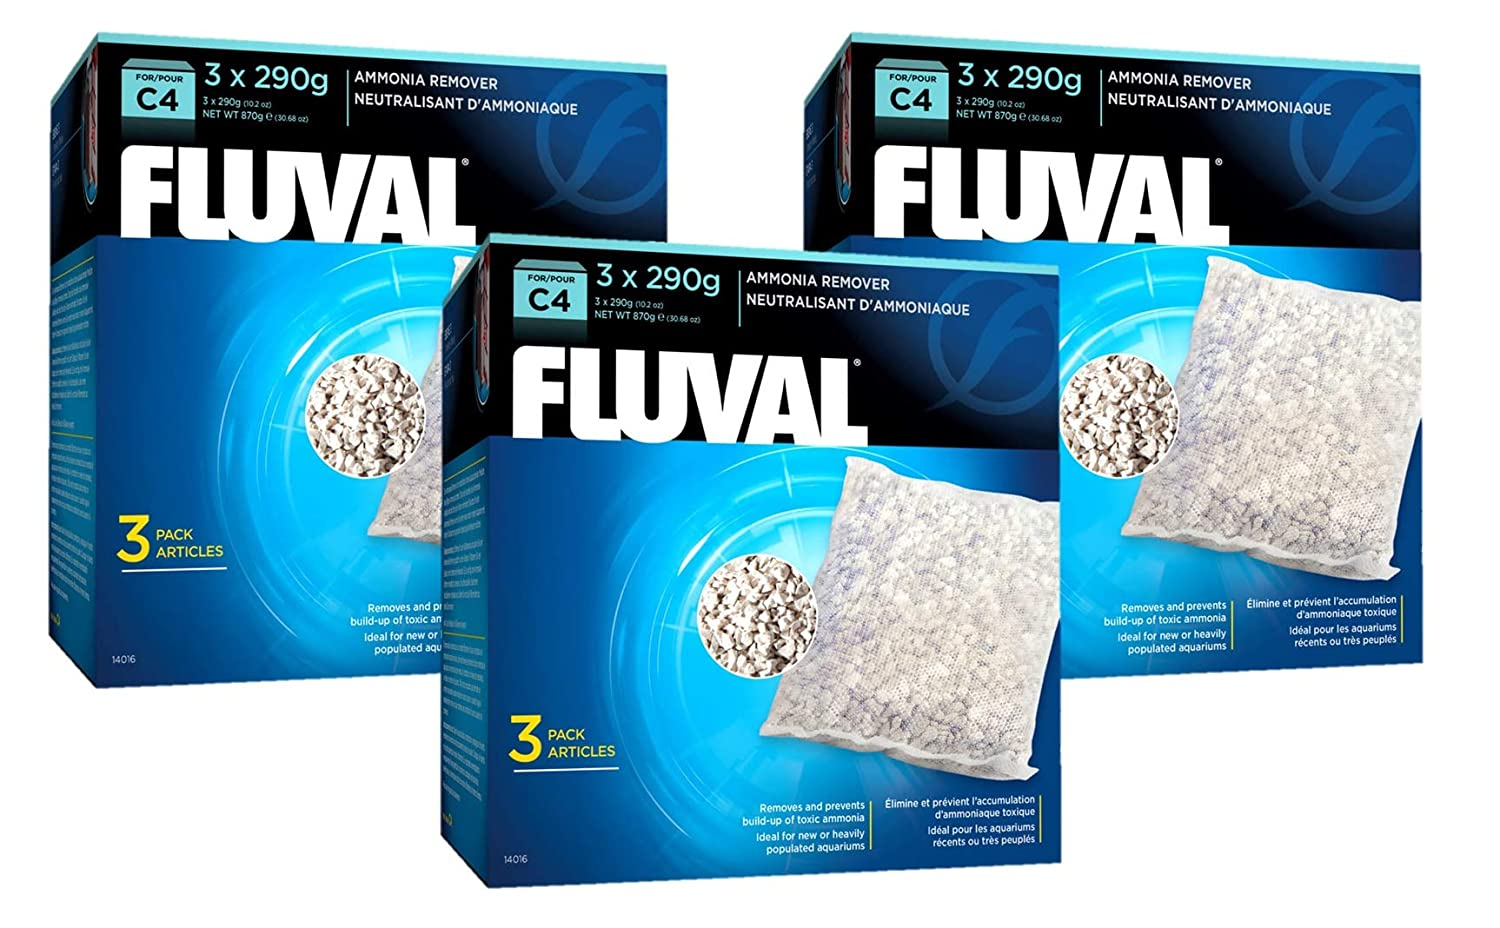 (9 Pack) Fluval C4 Ammonia Remover, 3 Packages with 3 Packs Each